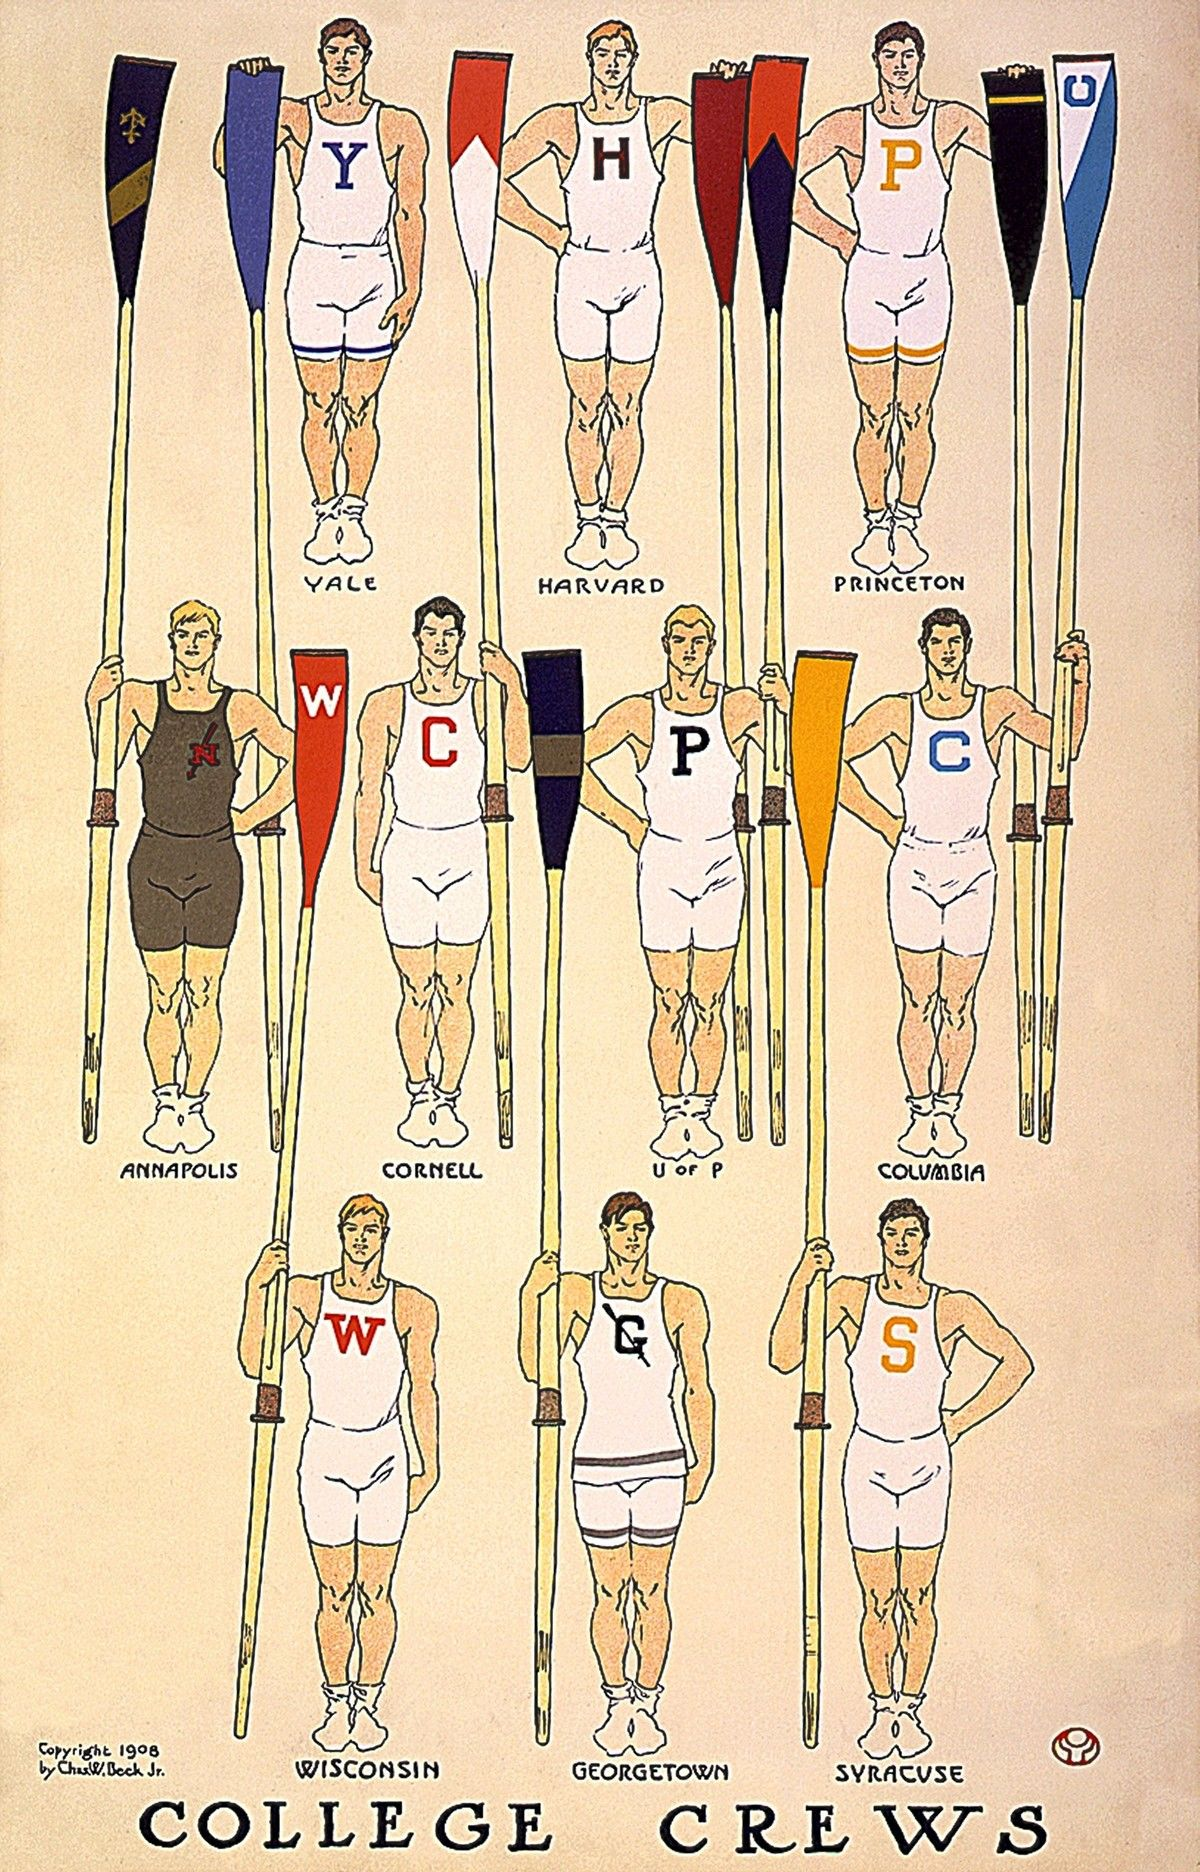 Rowing Crew Yale Harvard Princeton Annapolis Cornell University Of Pennsy Rowing Crew Rowing Team Vintage Posters